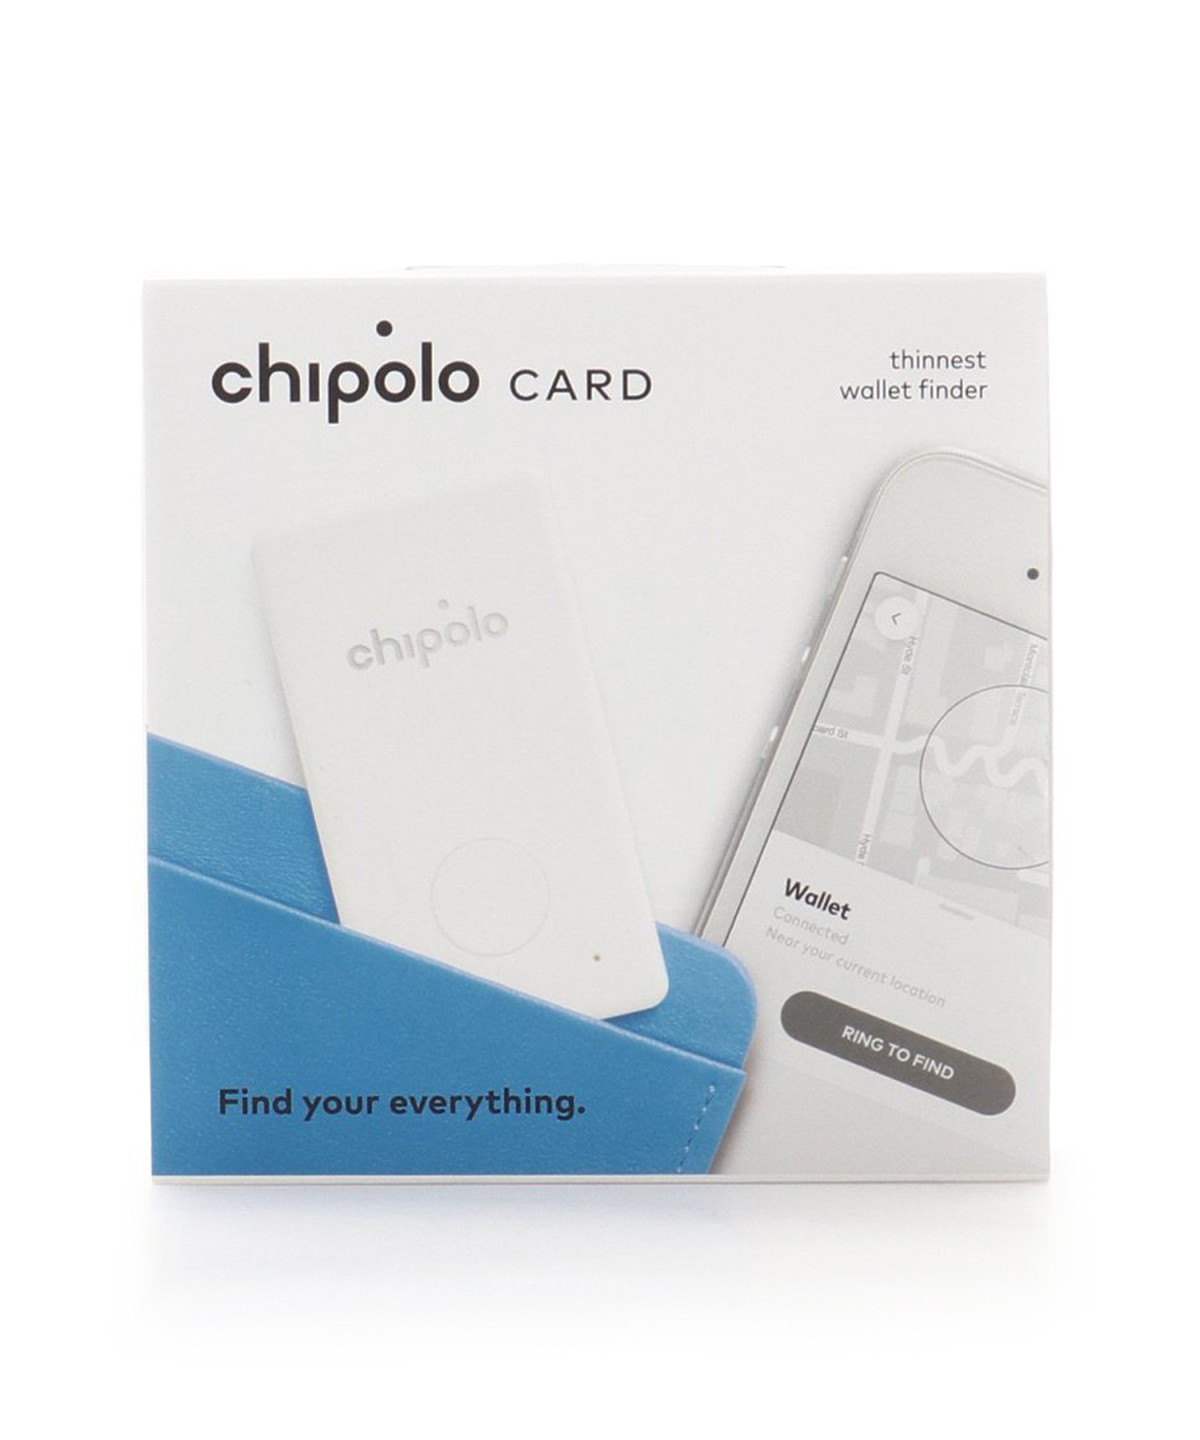 chipolo CARD